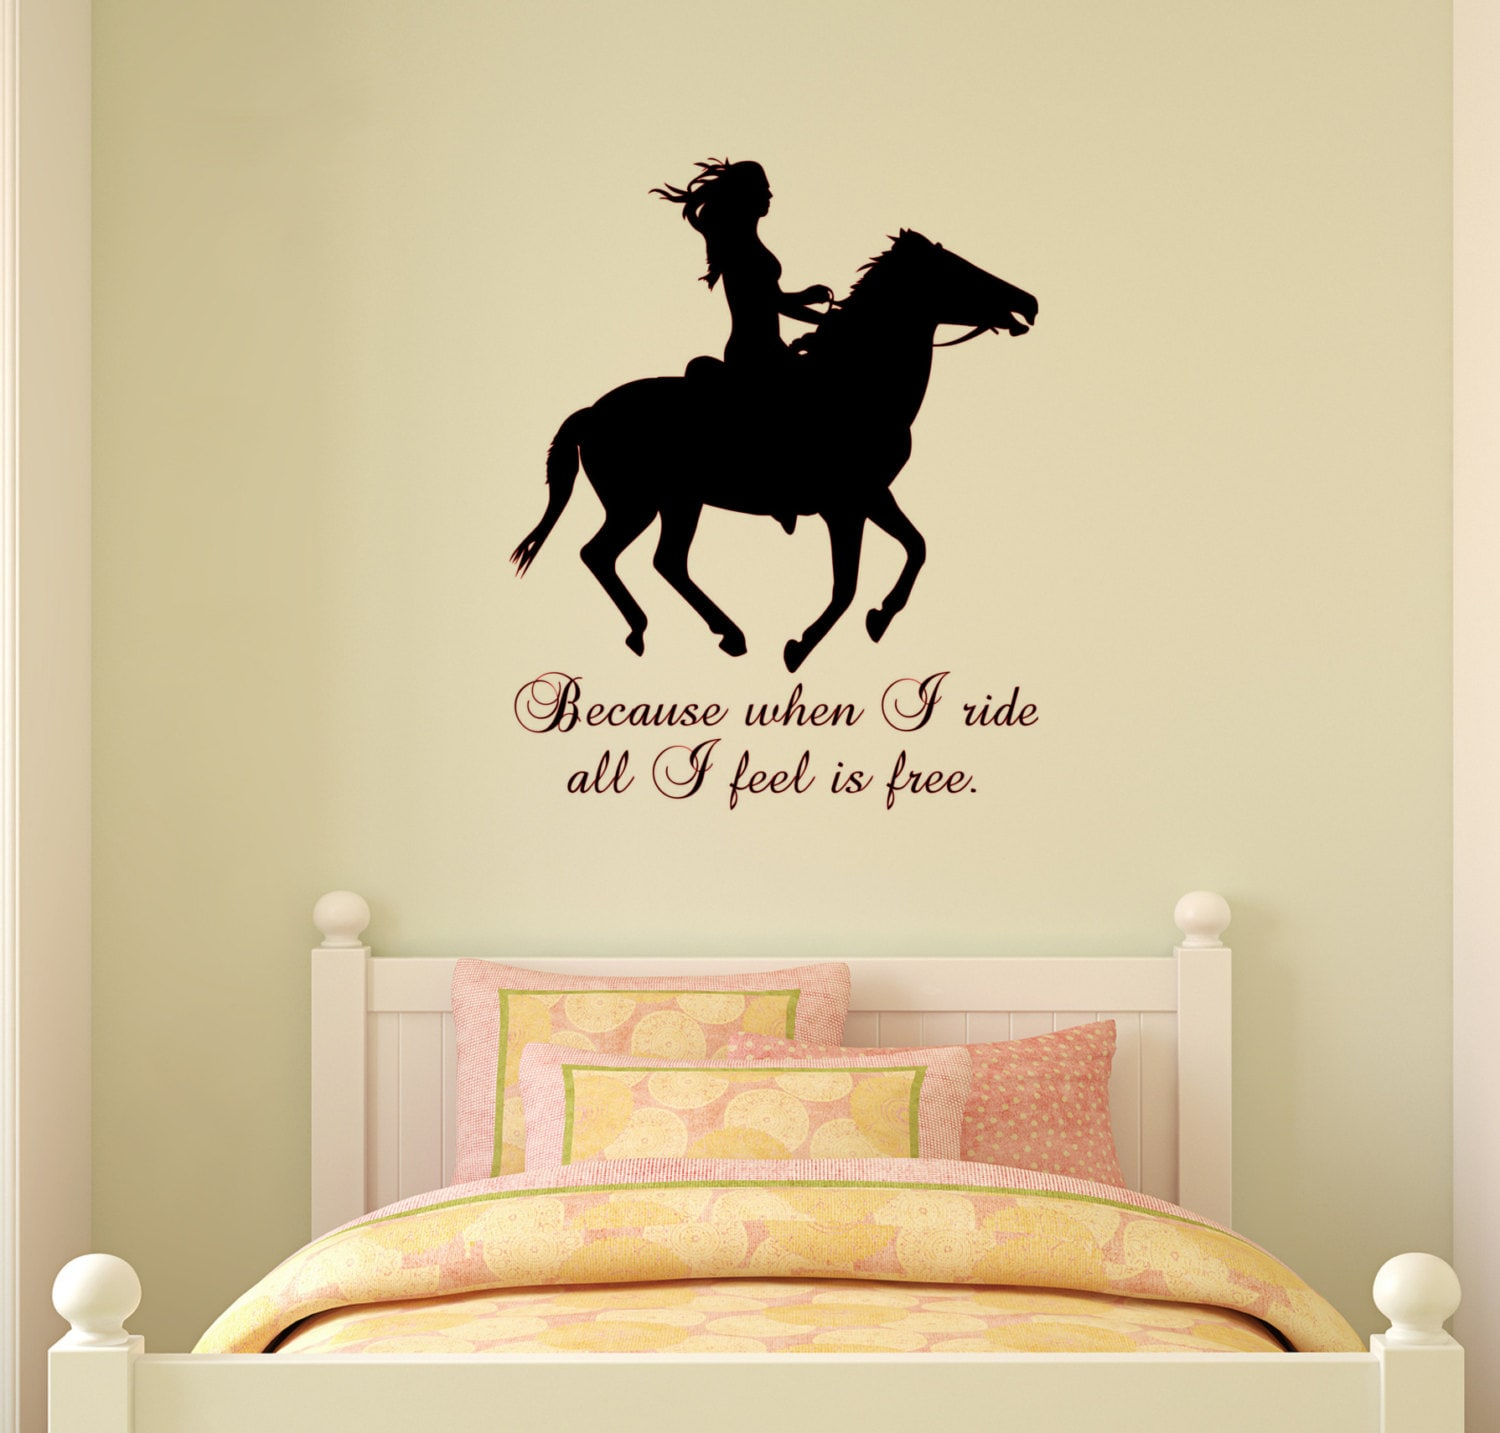 Horse Wall Decal Horse Quote Sticker Horse Decal For Girls